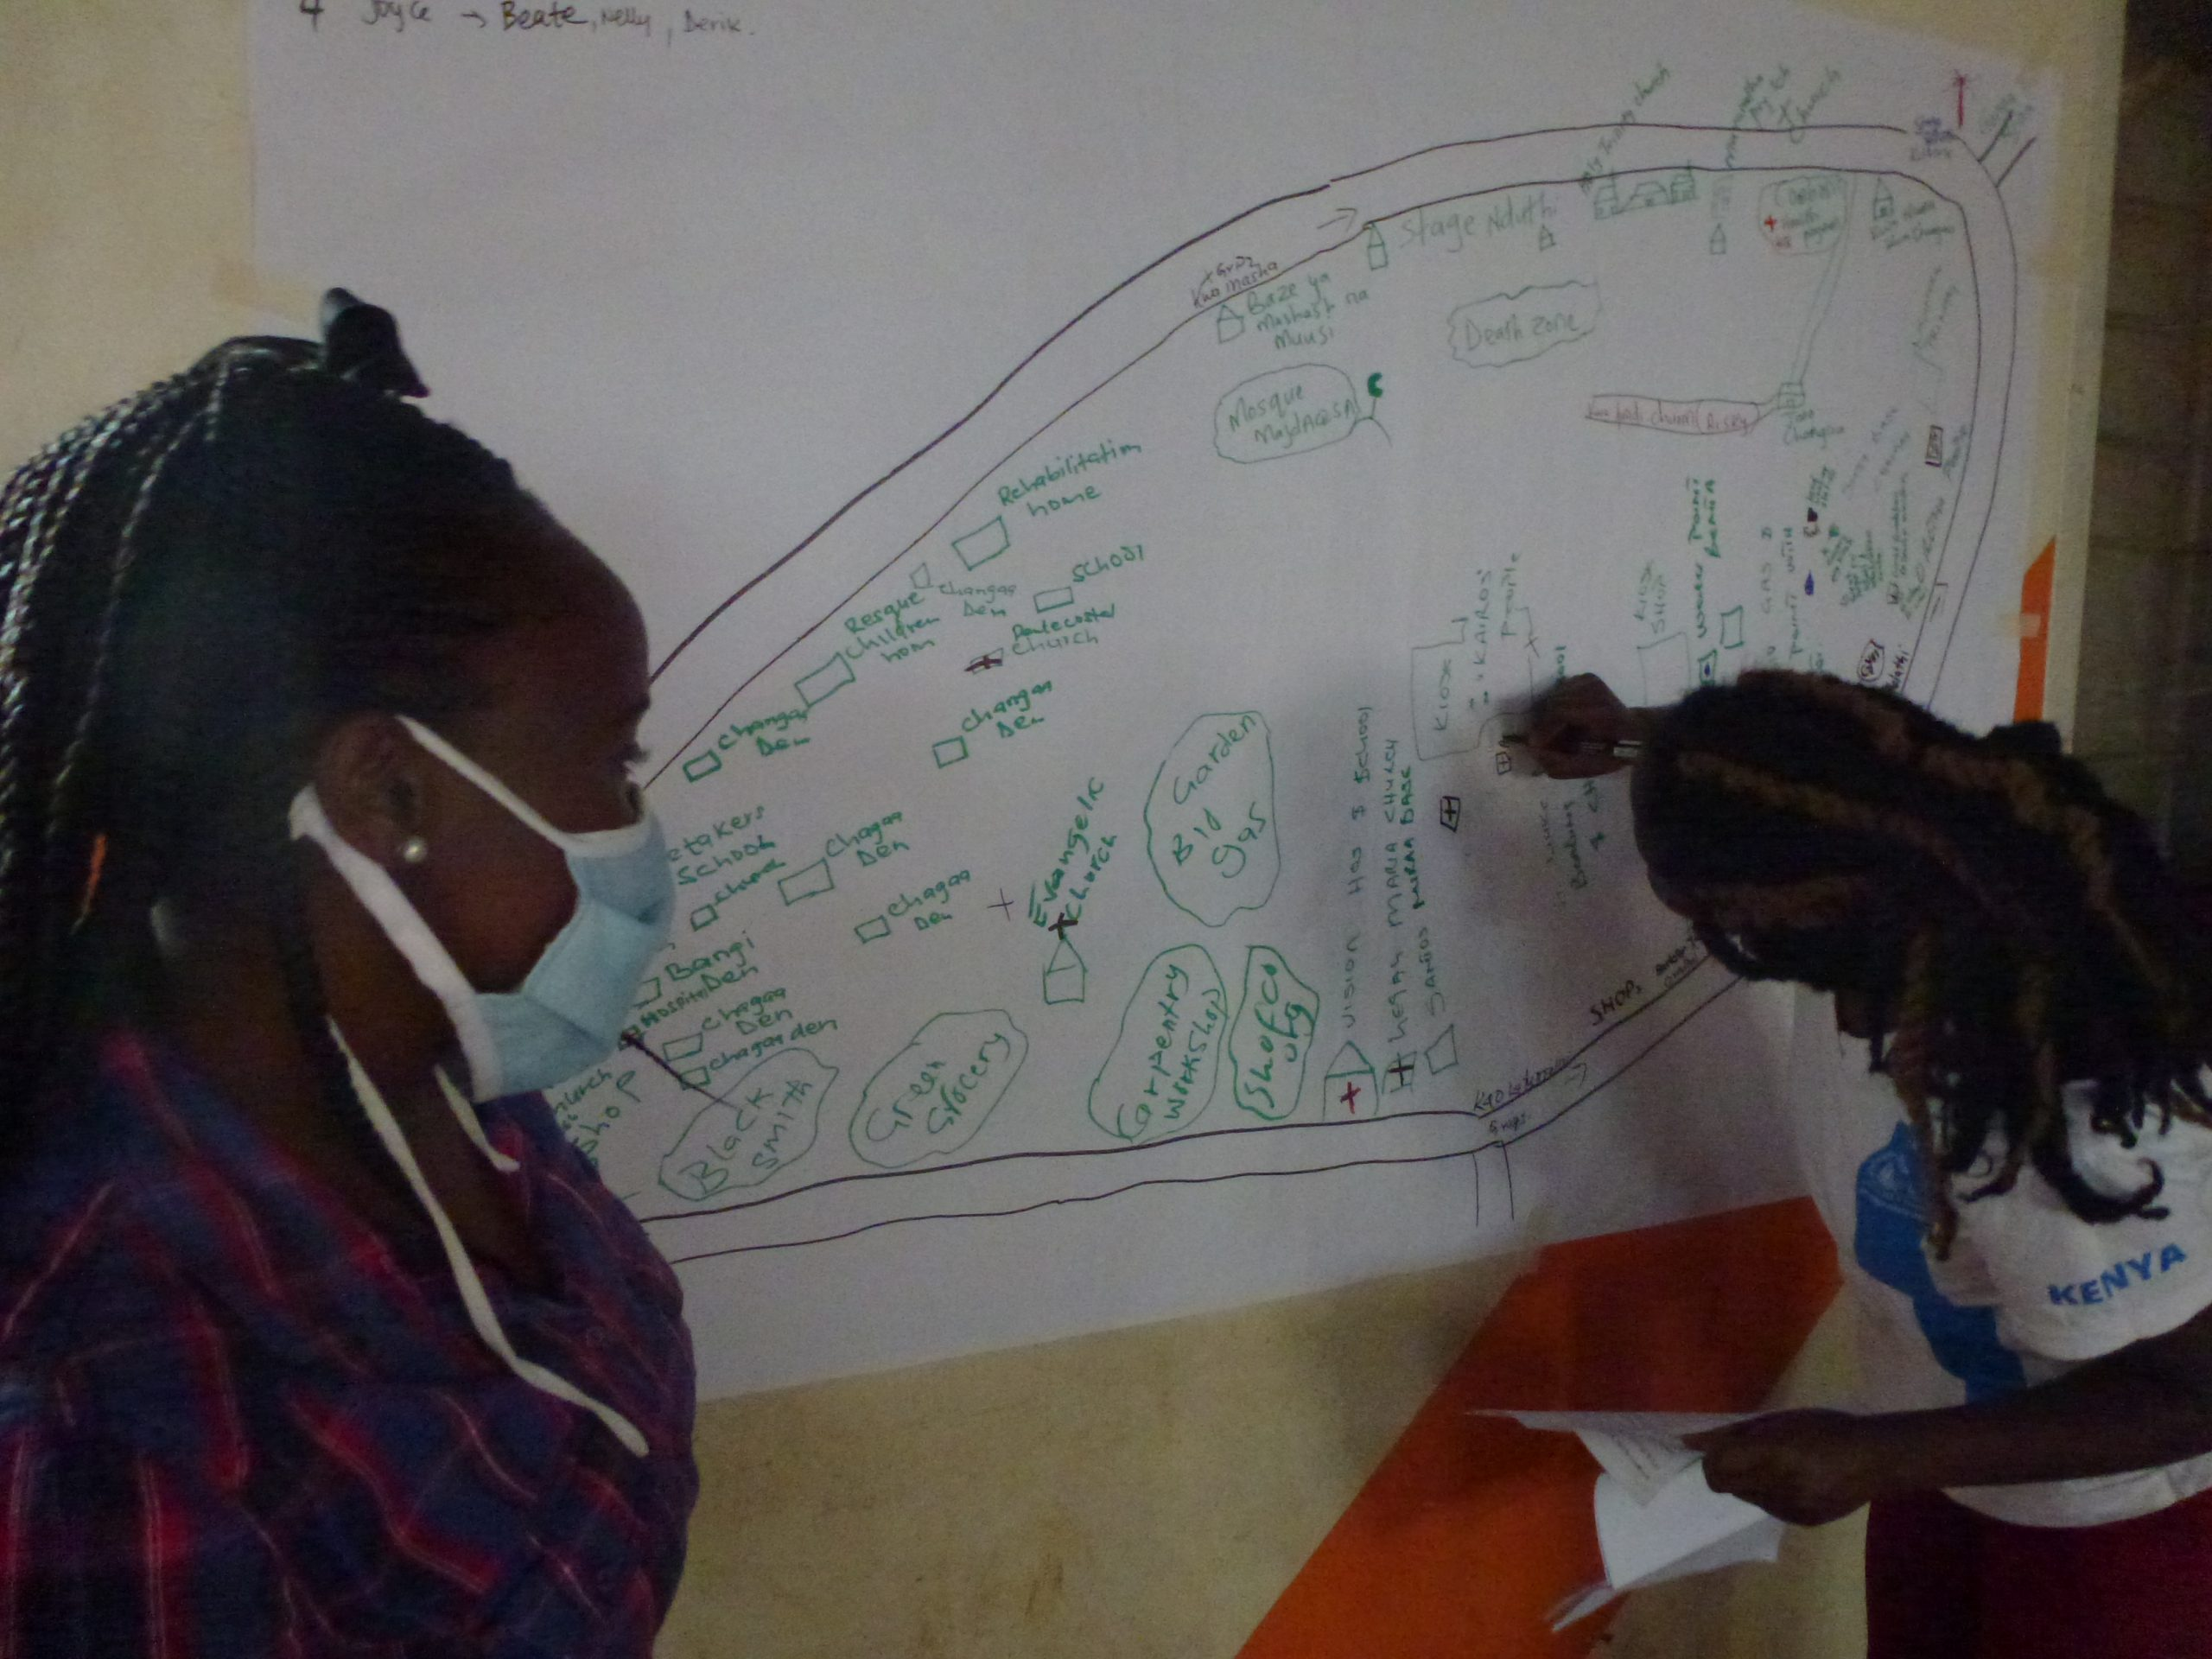 Doing Community Based Participatory Research in Kenya